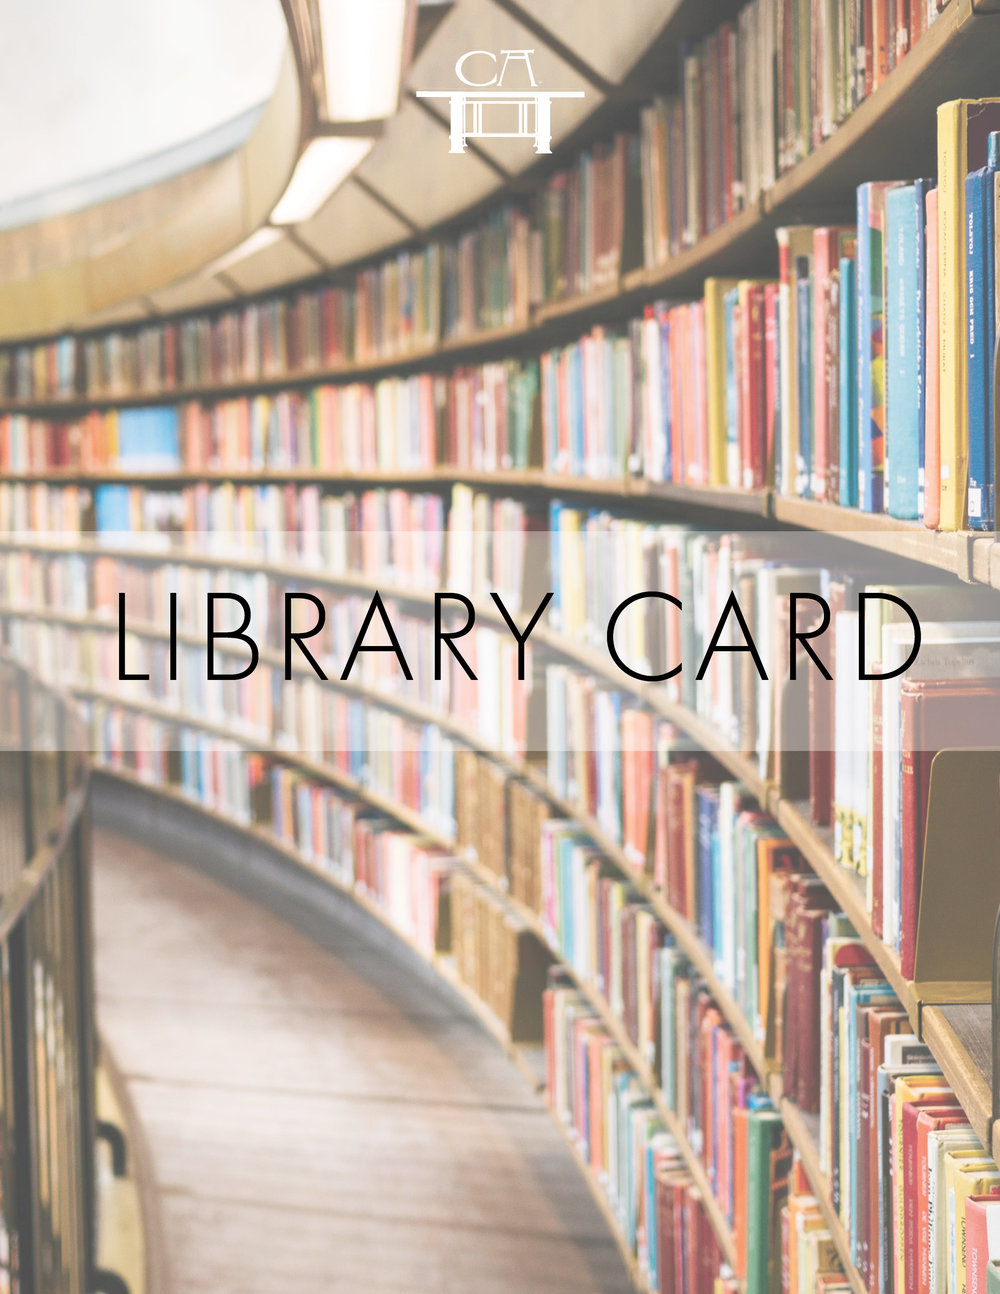 Library Card - Open up more opportunities with your Cana Academy Library Card and access all our digital guides, including guides on how to lead discussions on great works of literature. Master members only.